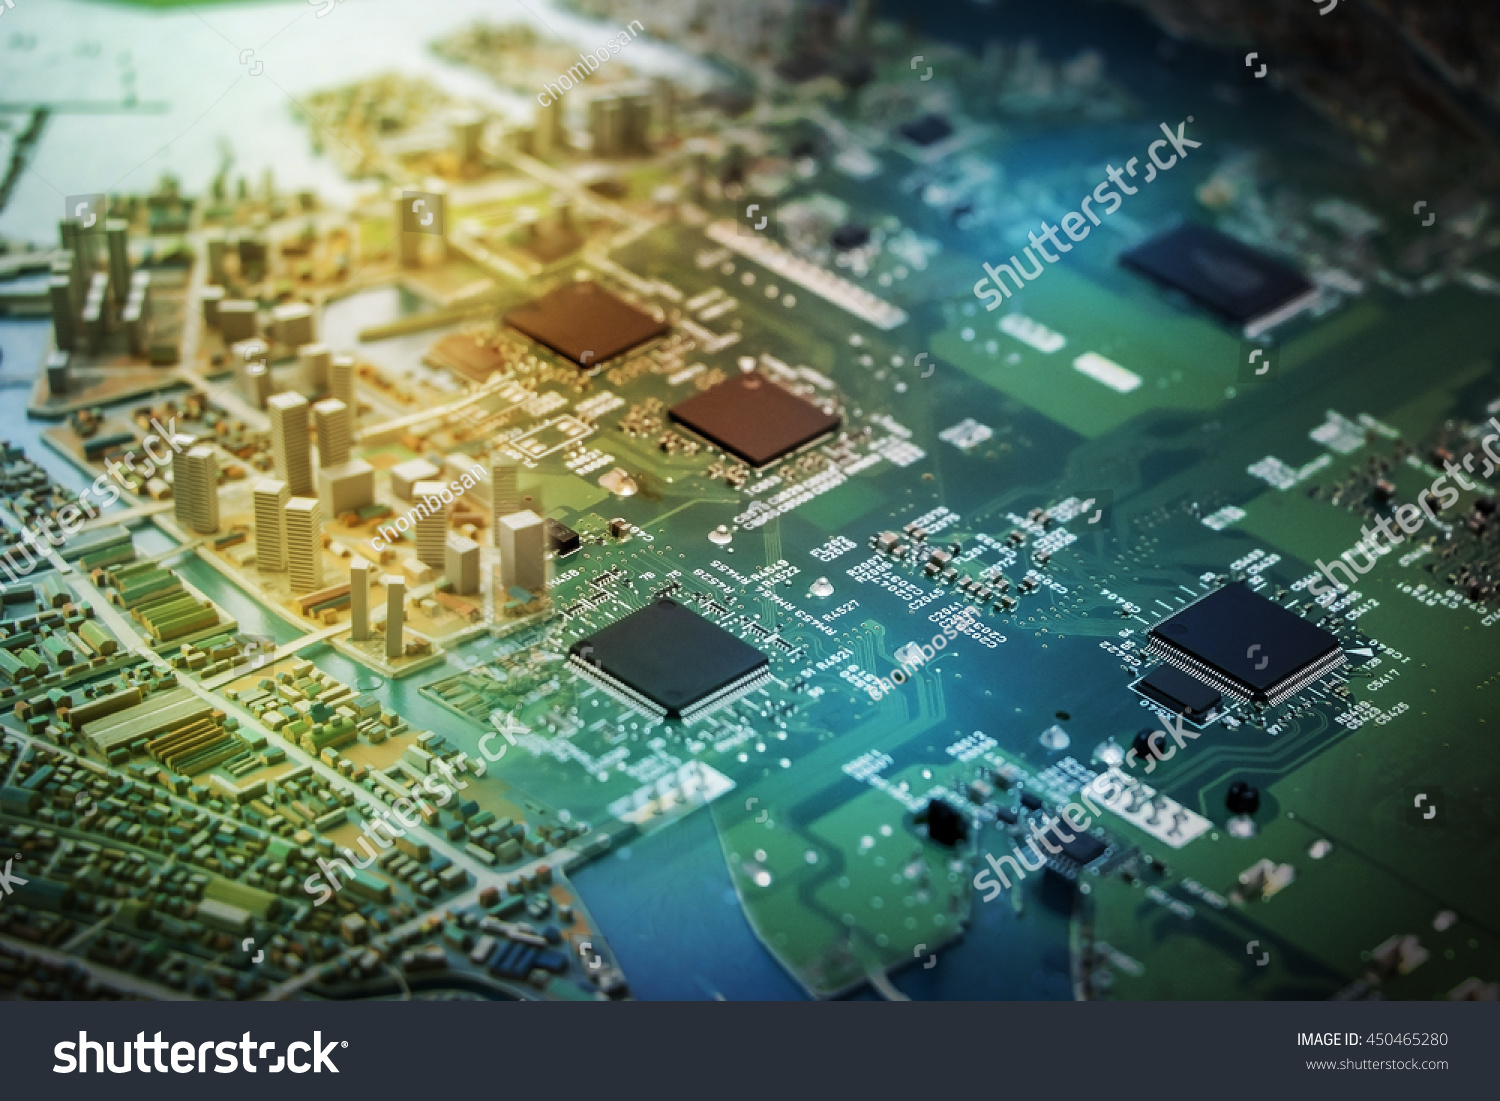 Modern City Diorama Electric Circuit Board Stock Photo Edit Now And Digital Transformation Abstract Image Visual